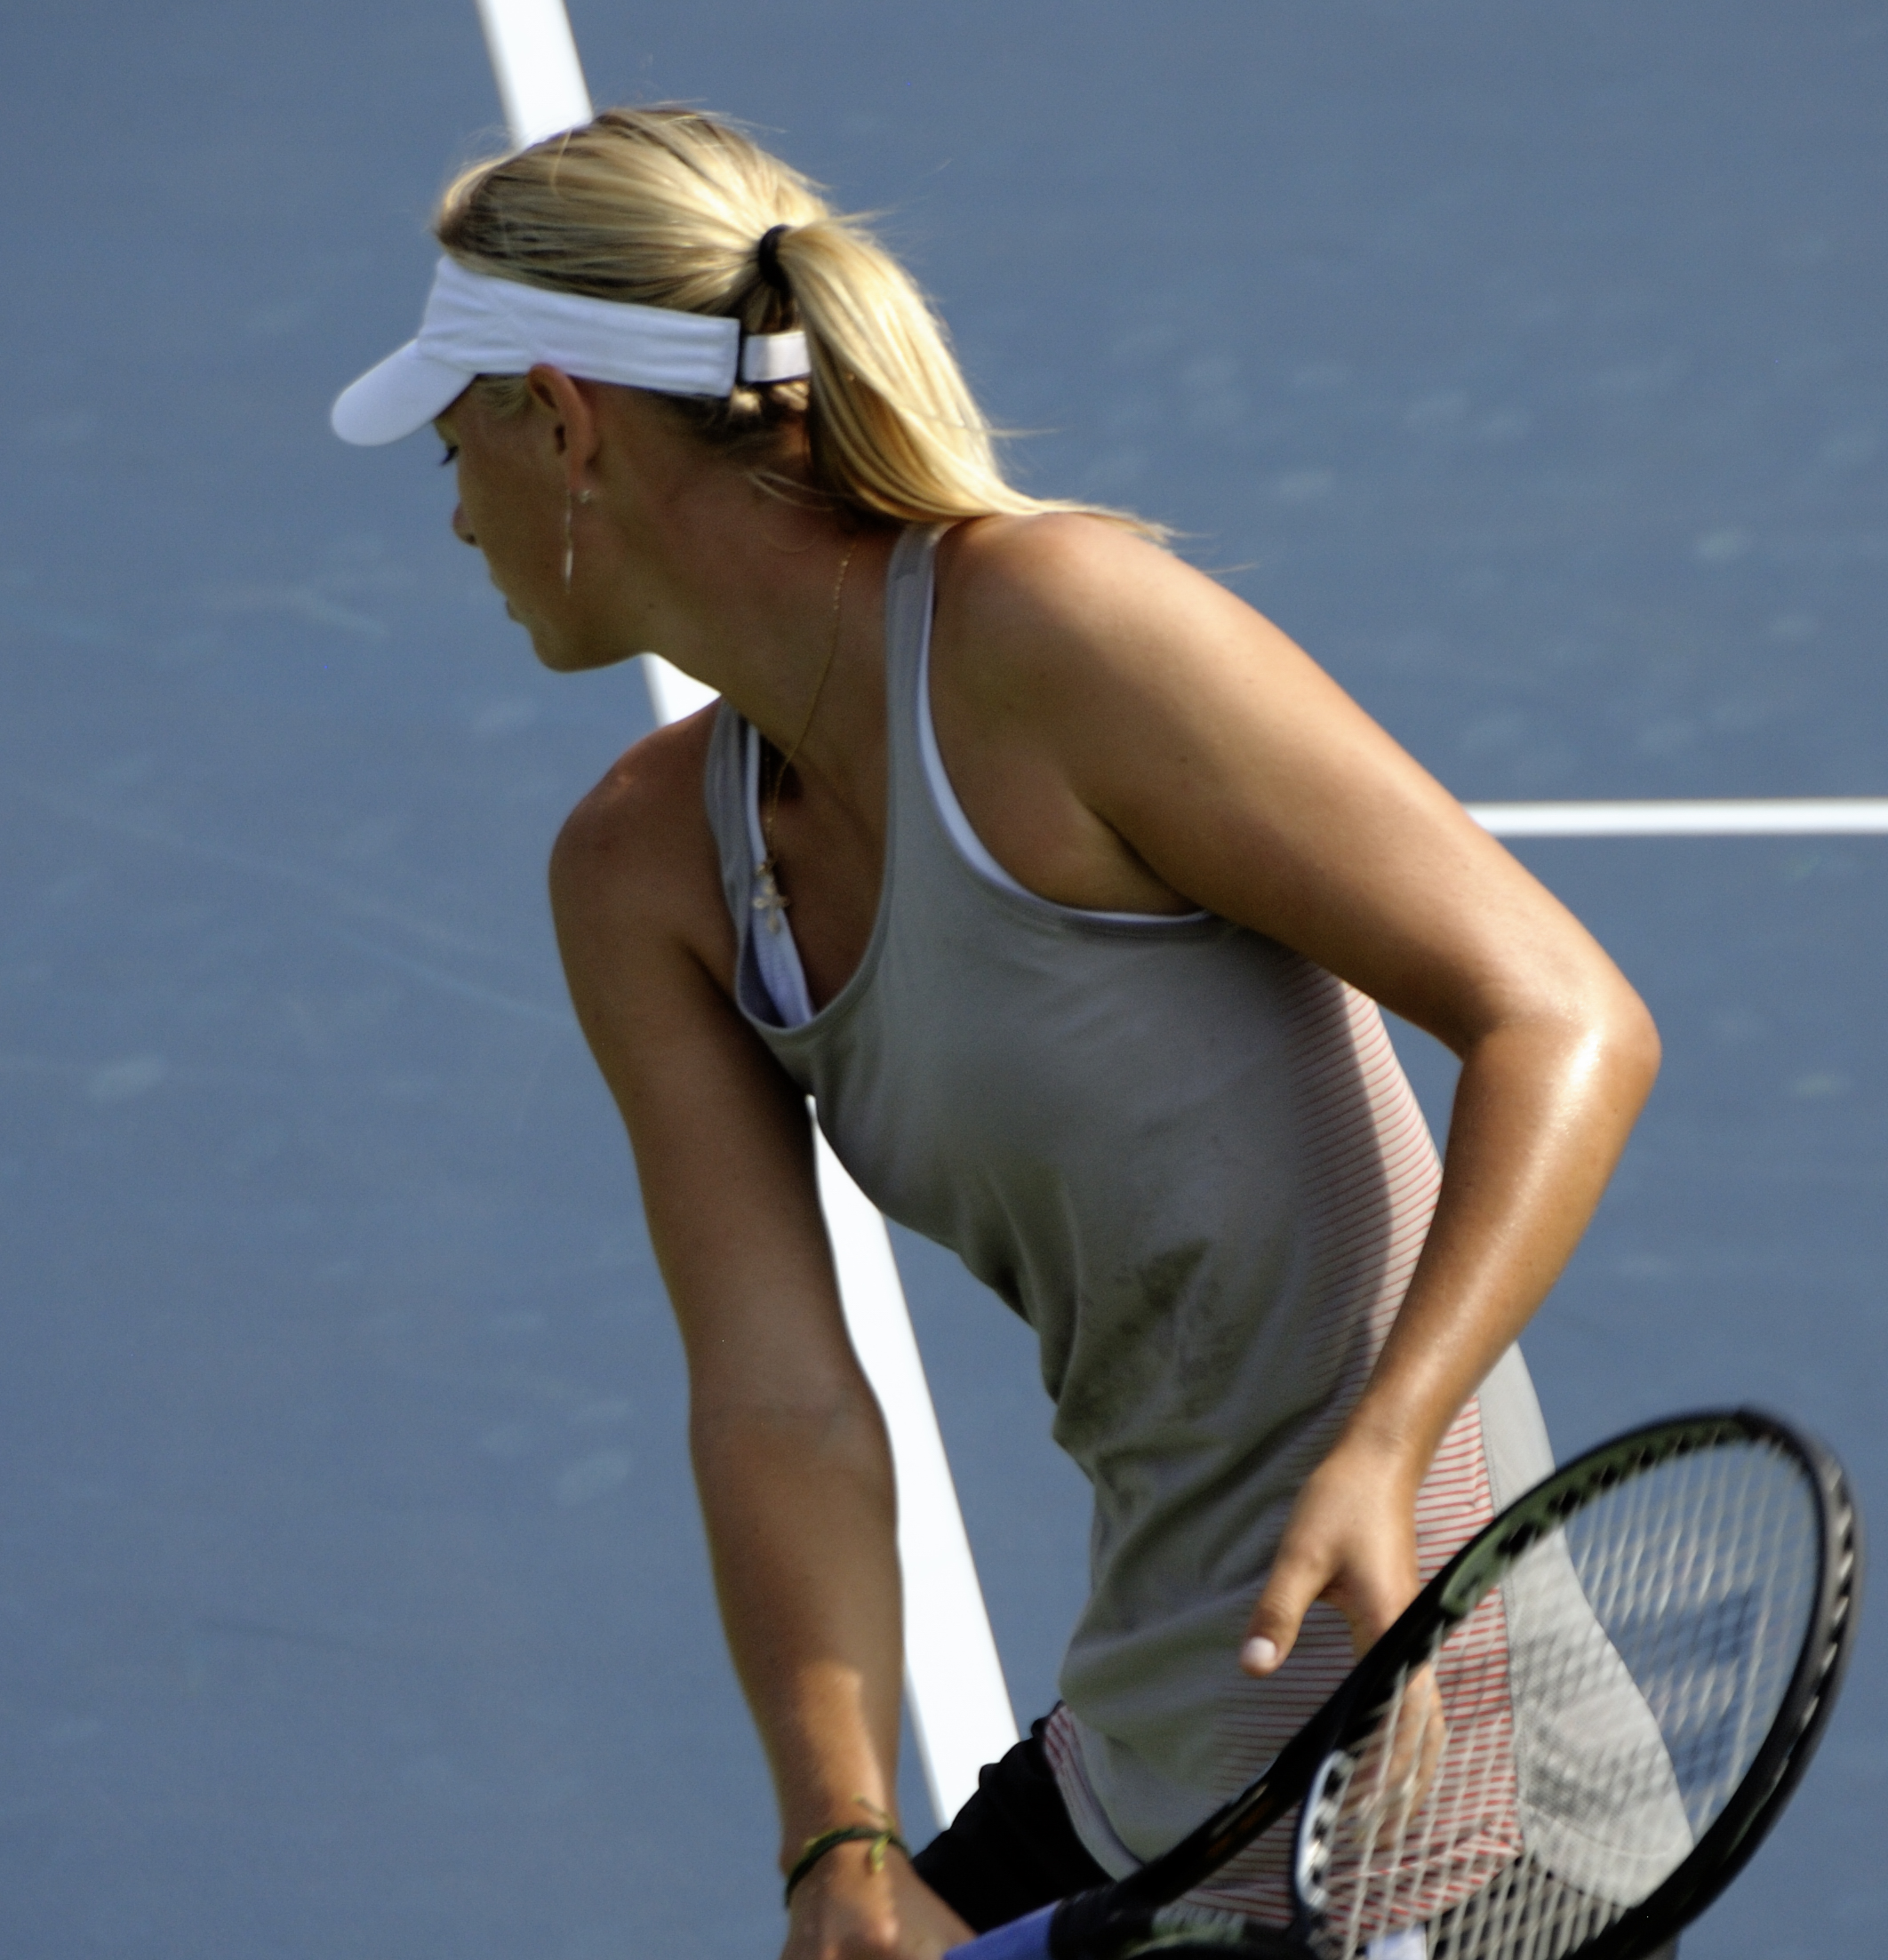 http://upload.wikimedia.org/wikipedia/commons/a/ae/Maria_Sharapova_at_the_2009_US_Open_01.jpg